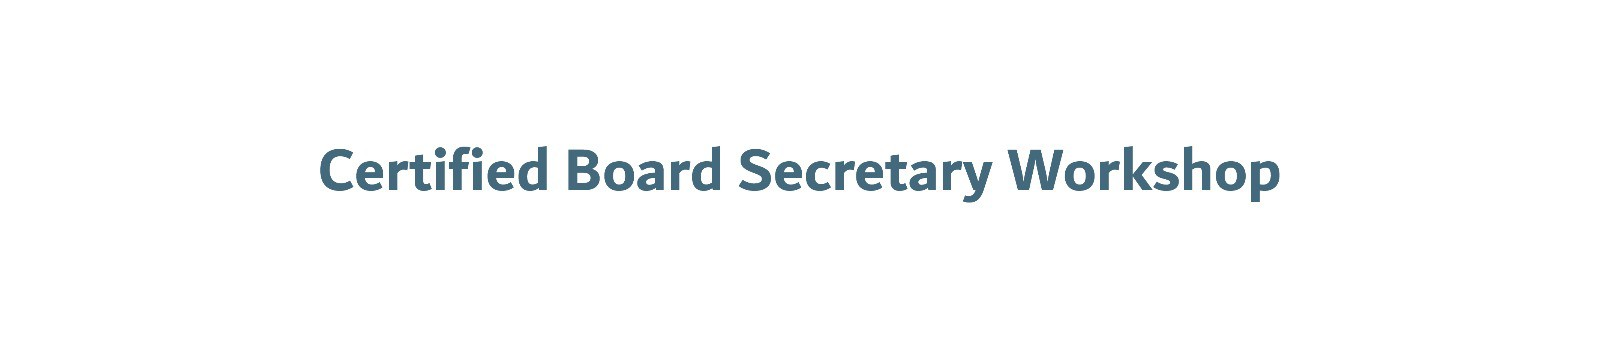 Certified Board Secretary Workshop